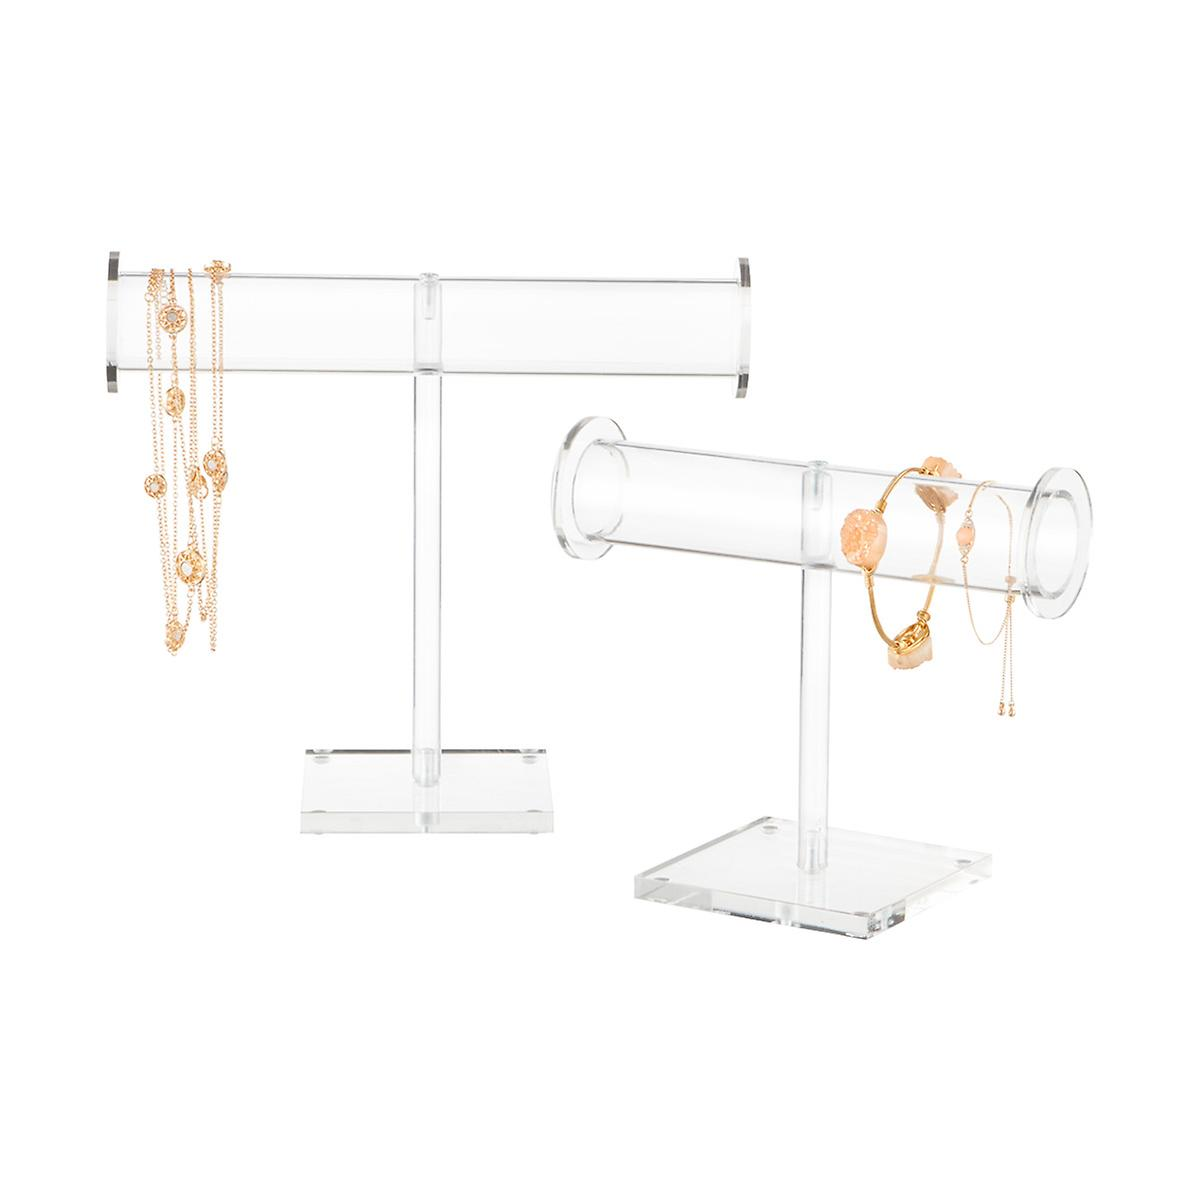 Acrylic Jewelry Stands, $15-$20 at The Container Store - We love how the clear acrylic of these stands allows the jewelry to stand out and goes with any decor!